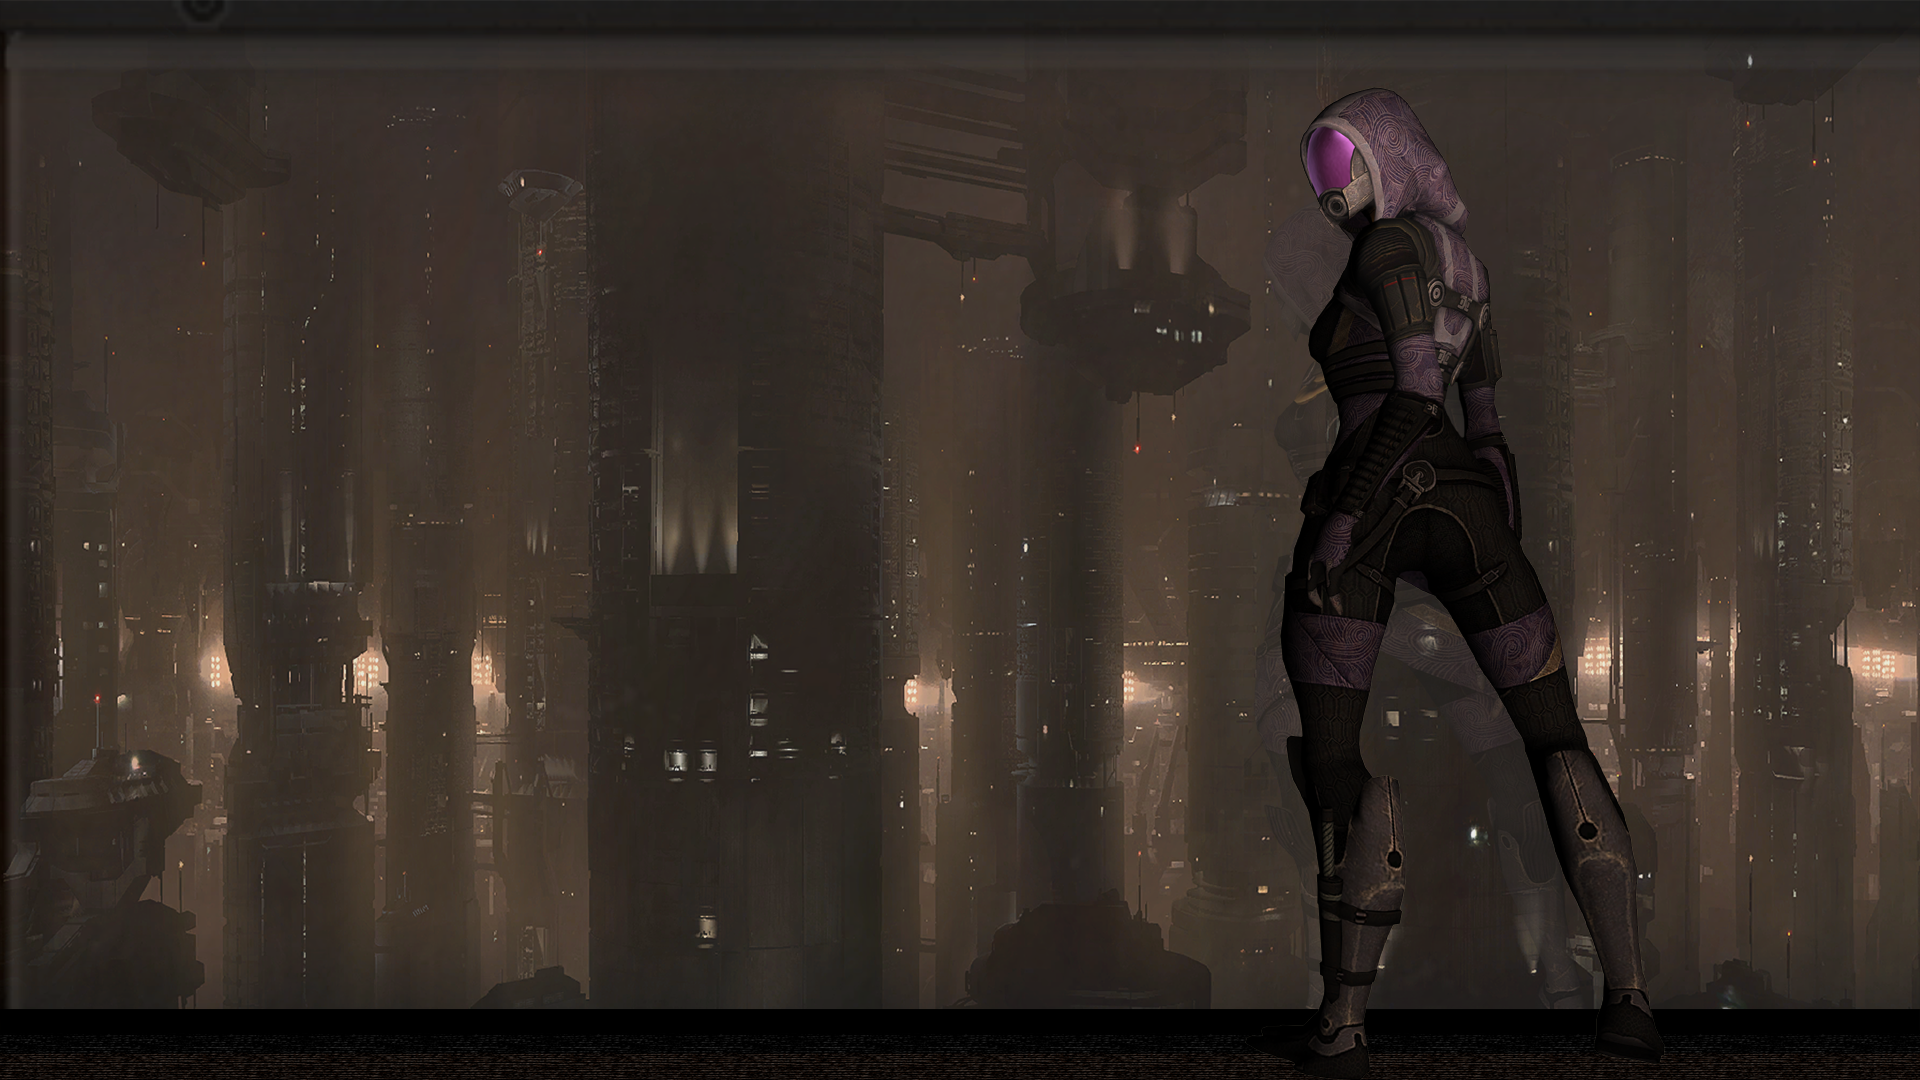 tali___omega_by_j4n3m3-d3hptuo.png